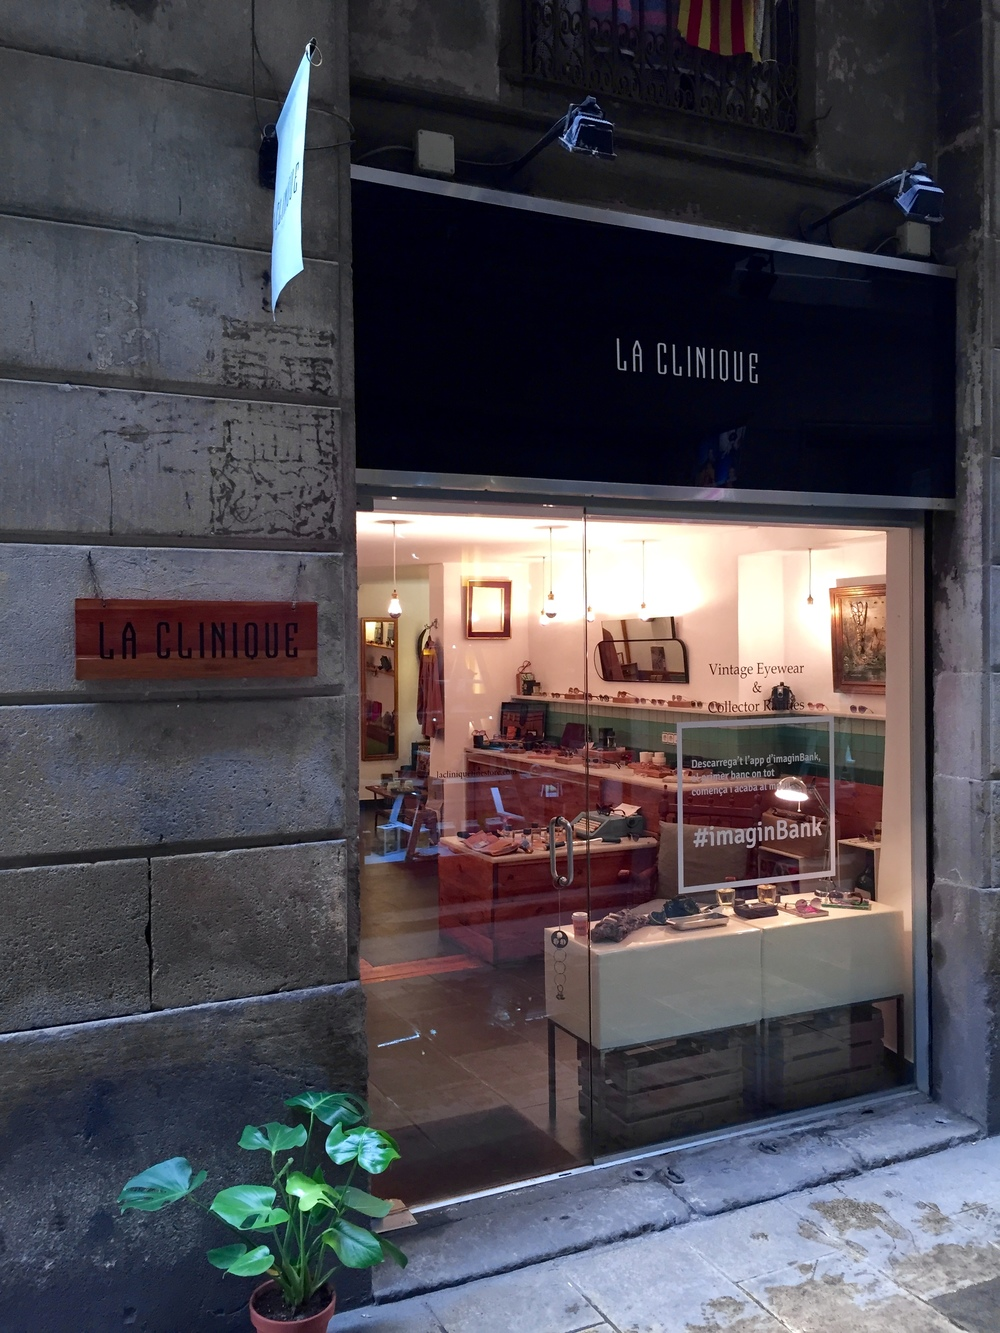 La Clinique, Fine store, Born - Appetite and Other Stories Barcelona and beyond